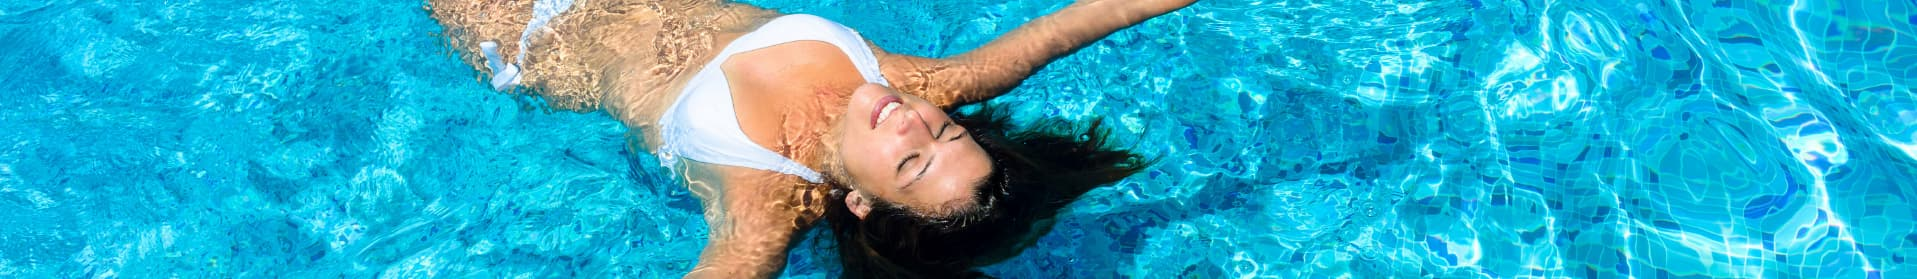 Woman Floating In Maintained & Serviced Commercial Pool